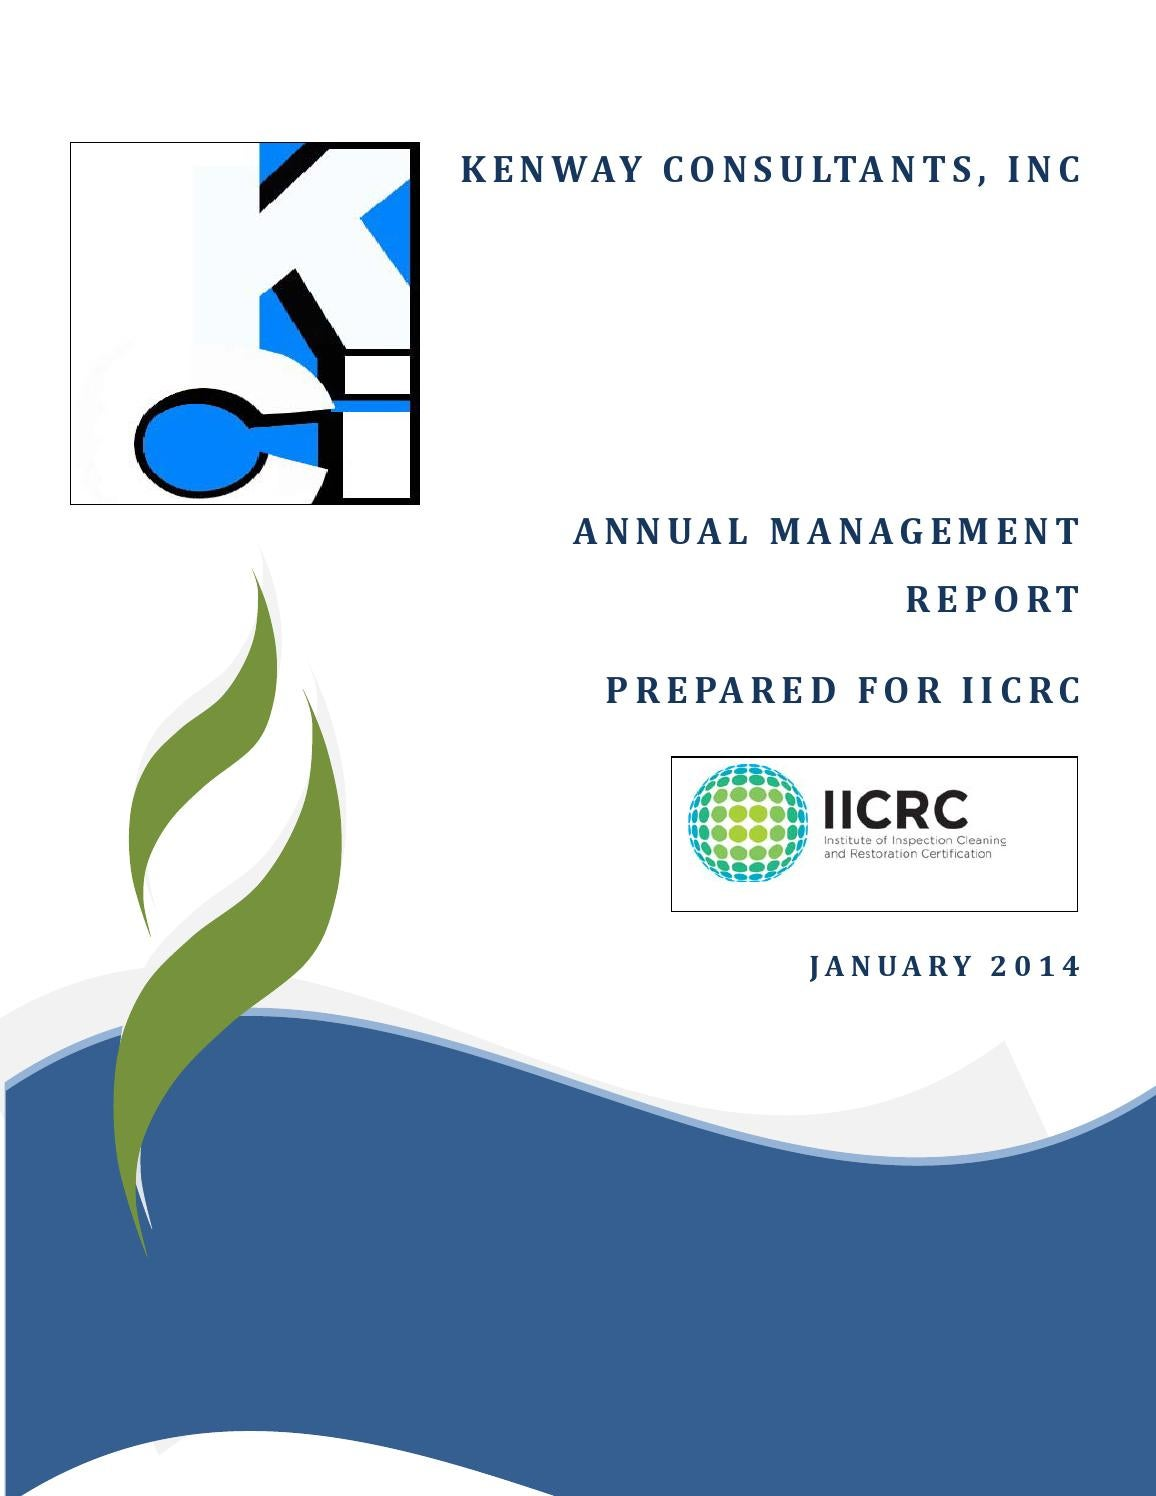 2013 12 27 Draft Kci Annual Report By Valeriefrieswade Issuu